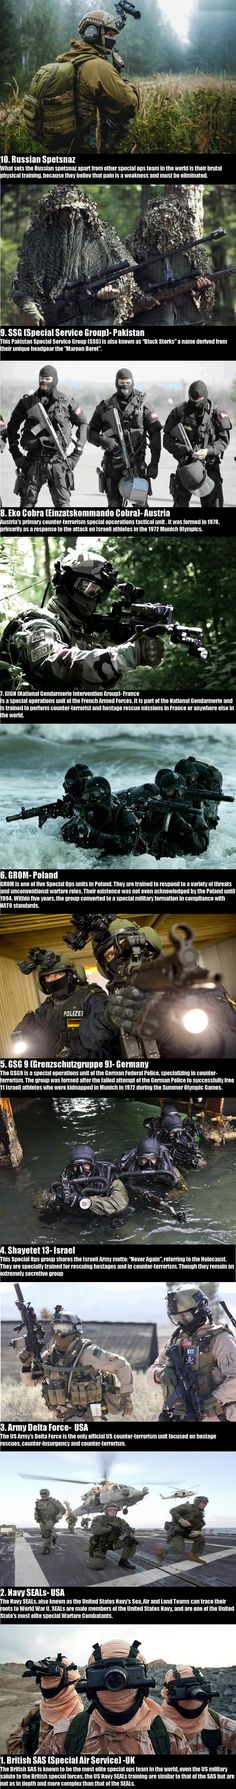 Top Ten Special ops team in the world